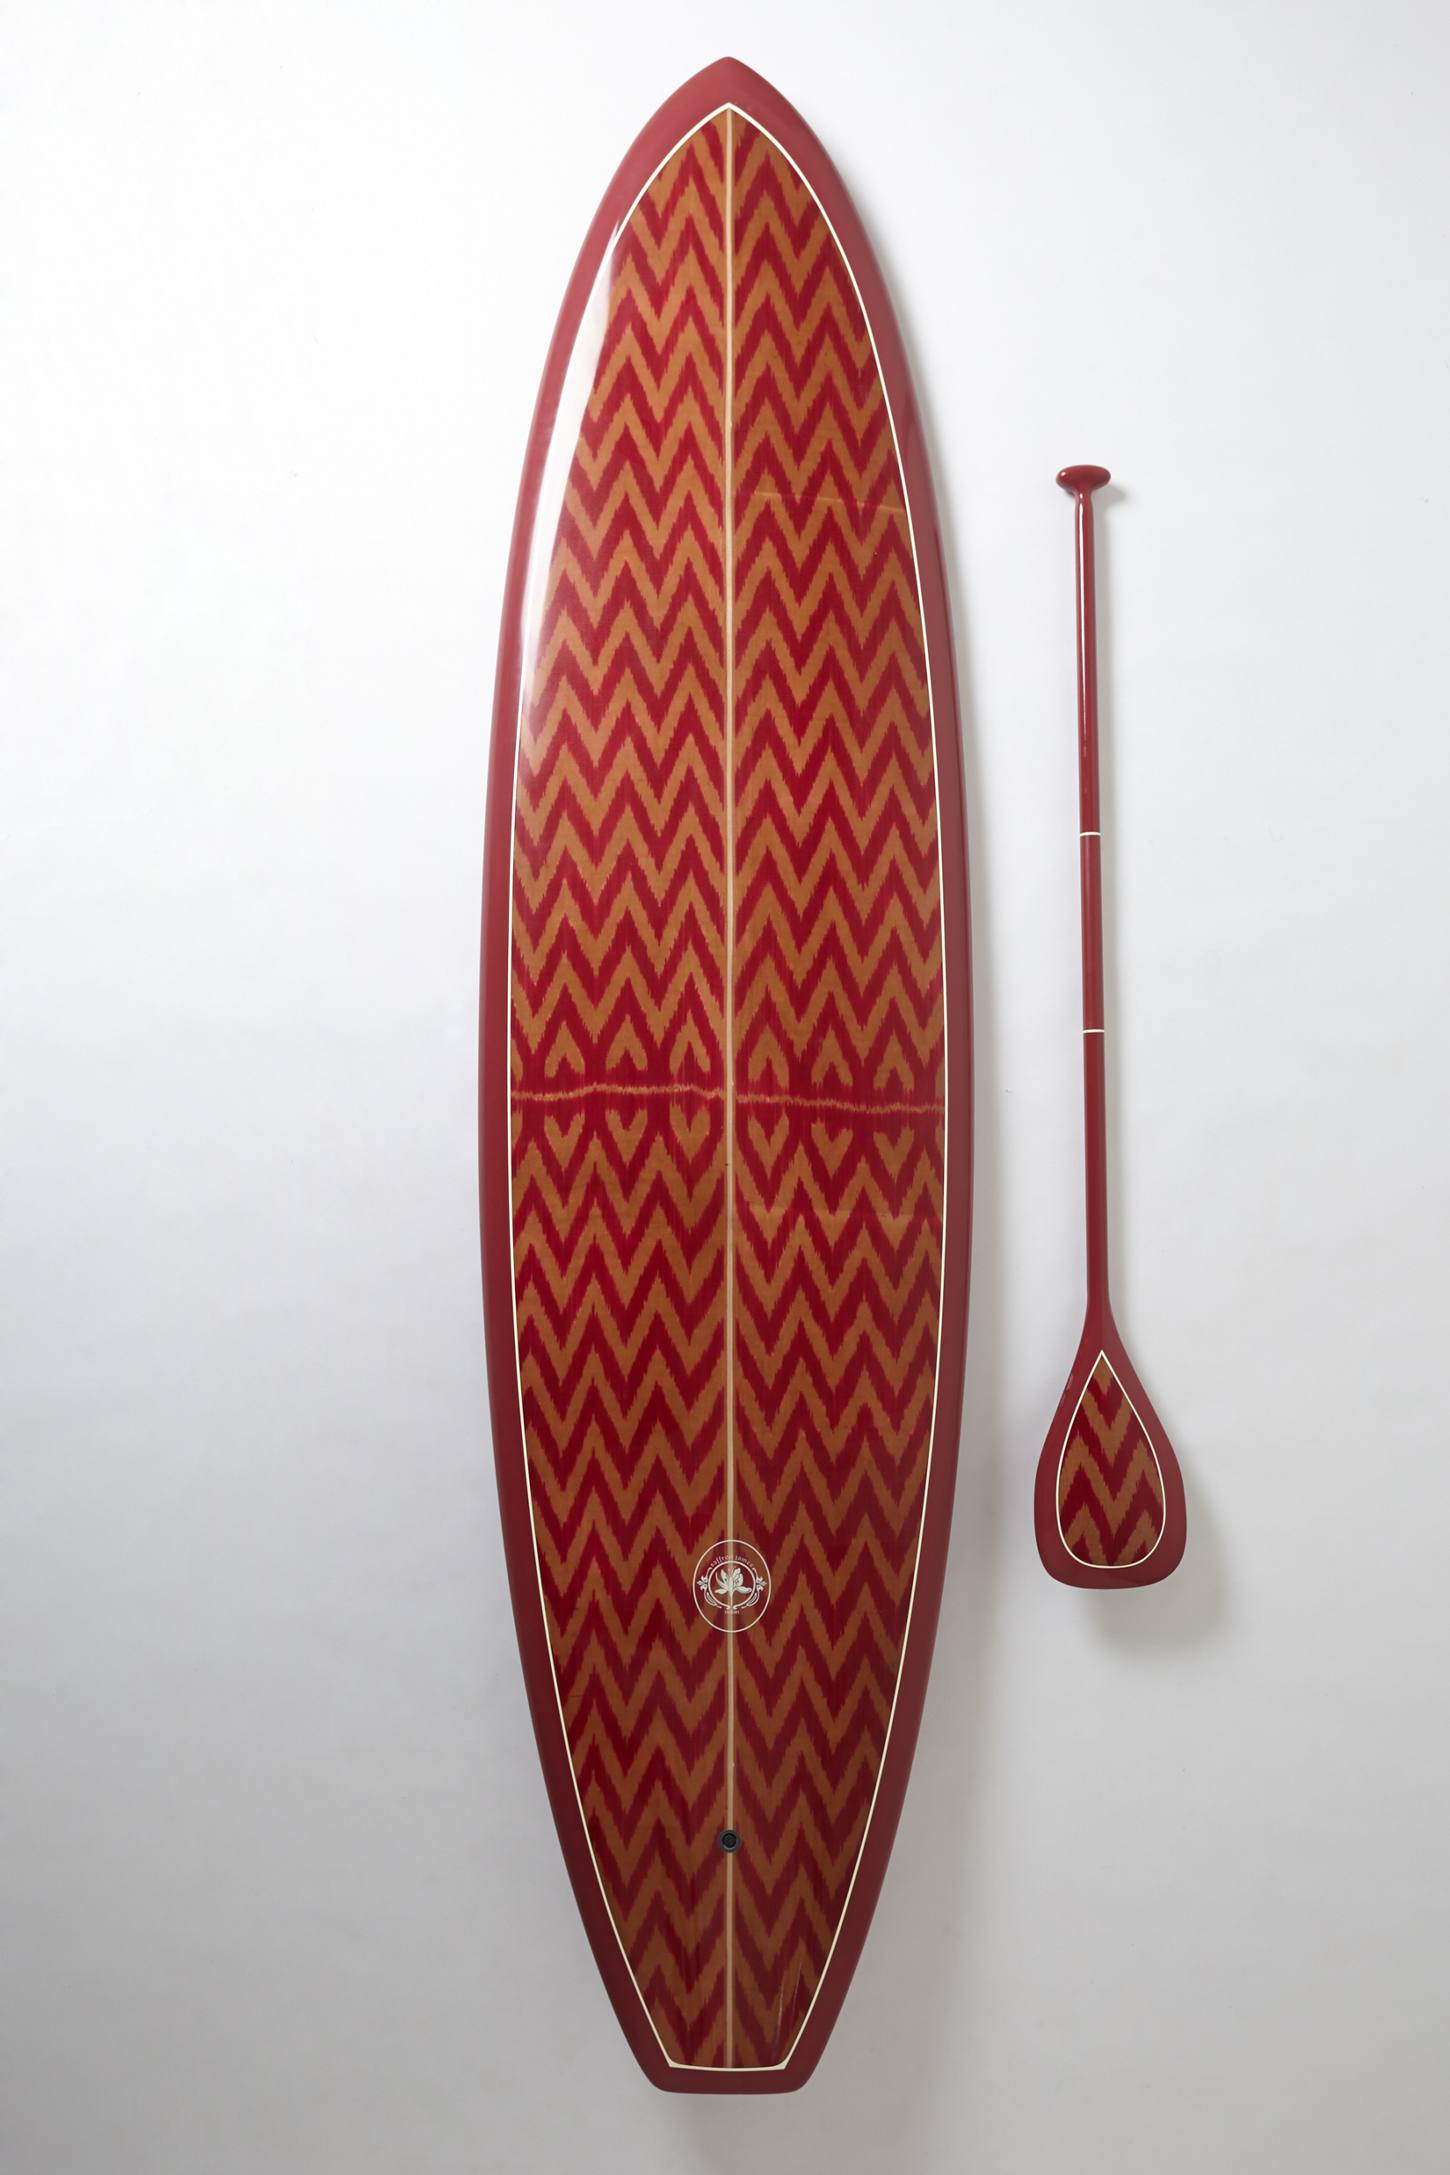 Limited-Edition Stand-Up Paddleboard, Kai Apo